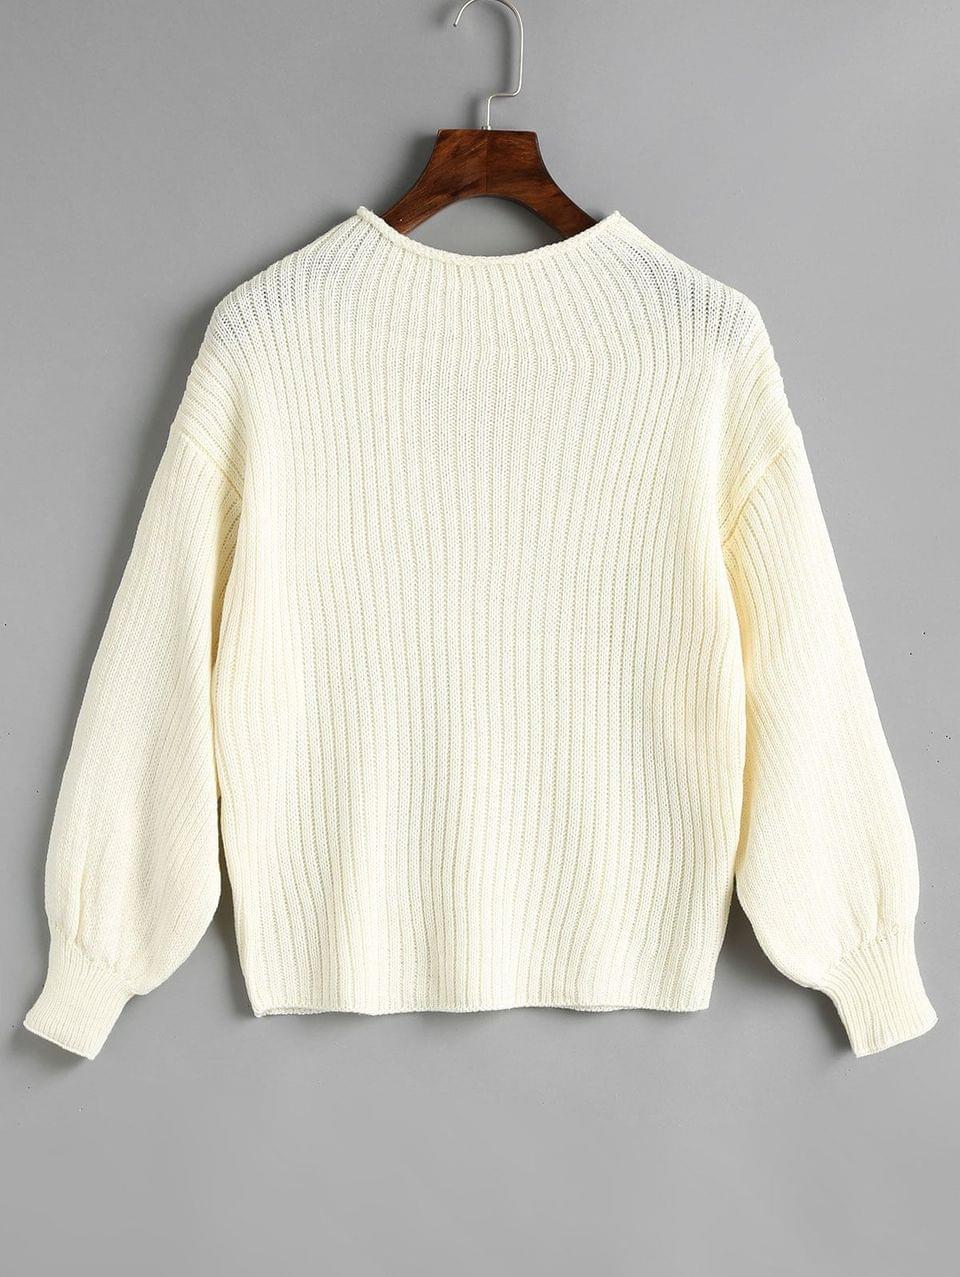 Women's Plain Mock Neck Lantern Sleeve Sweater - White